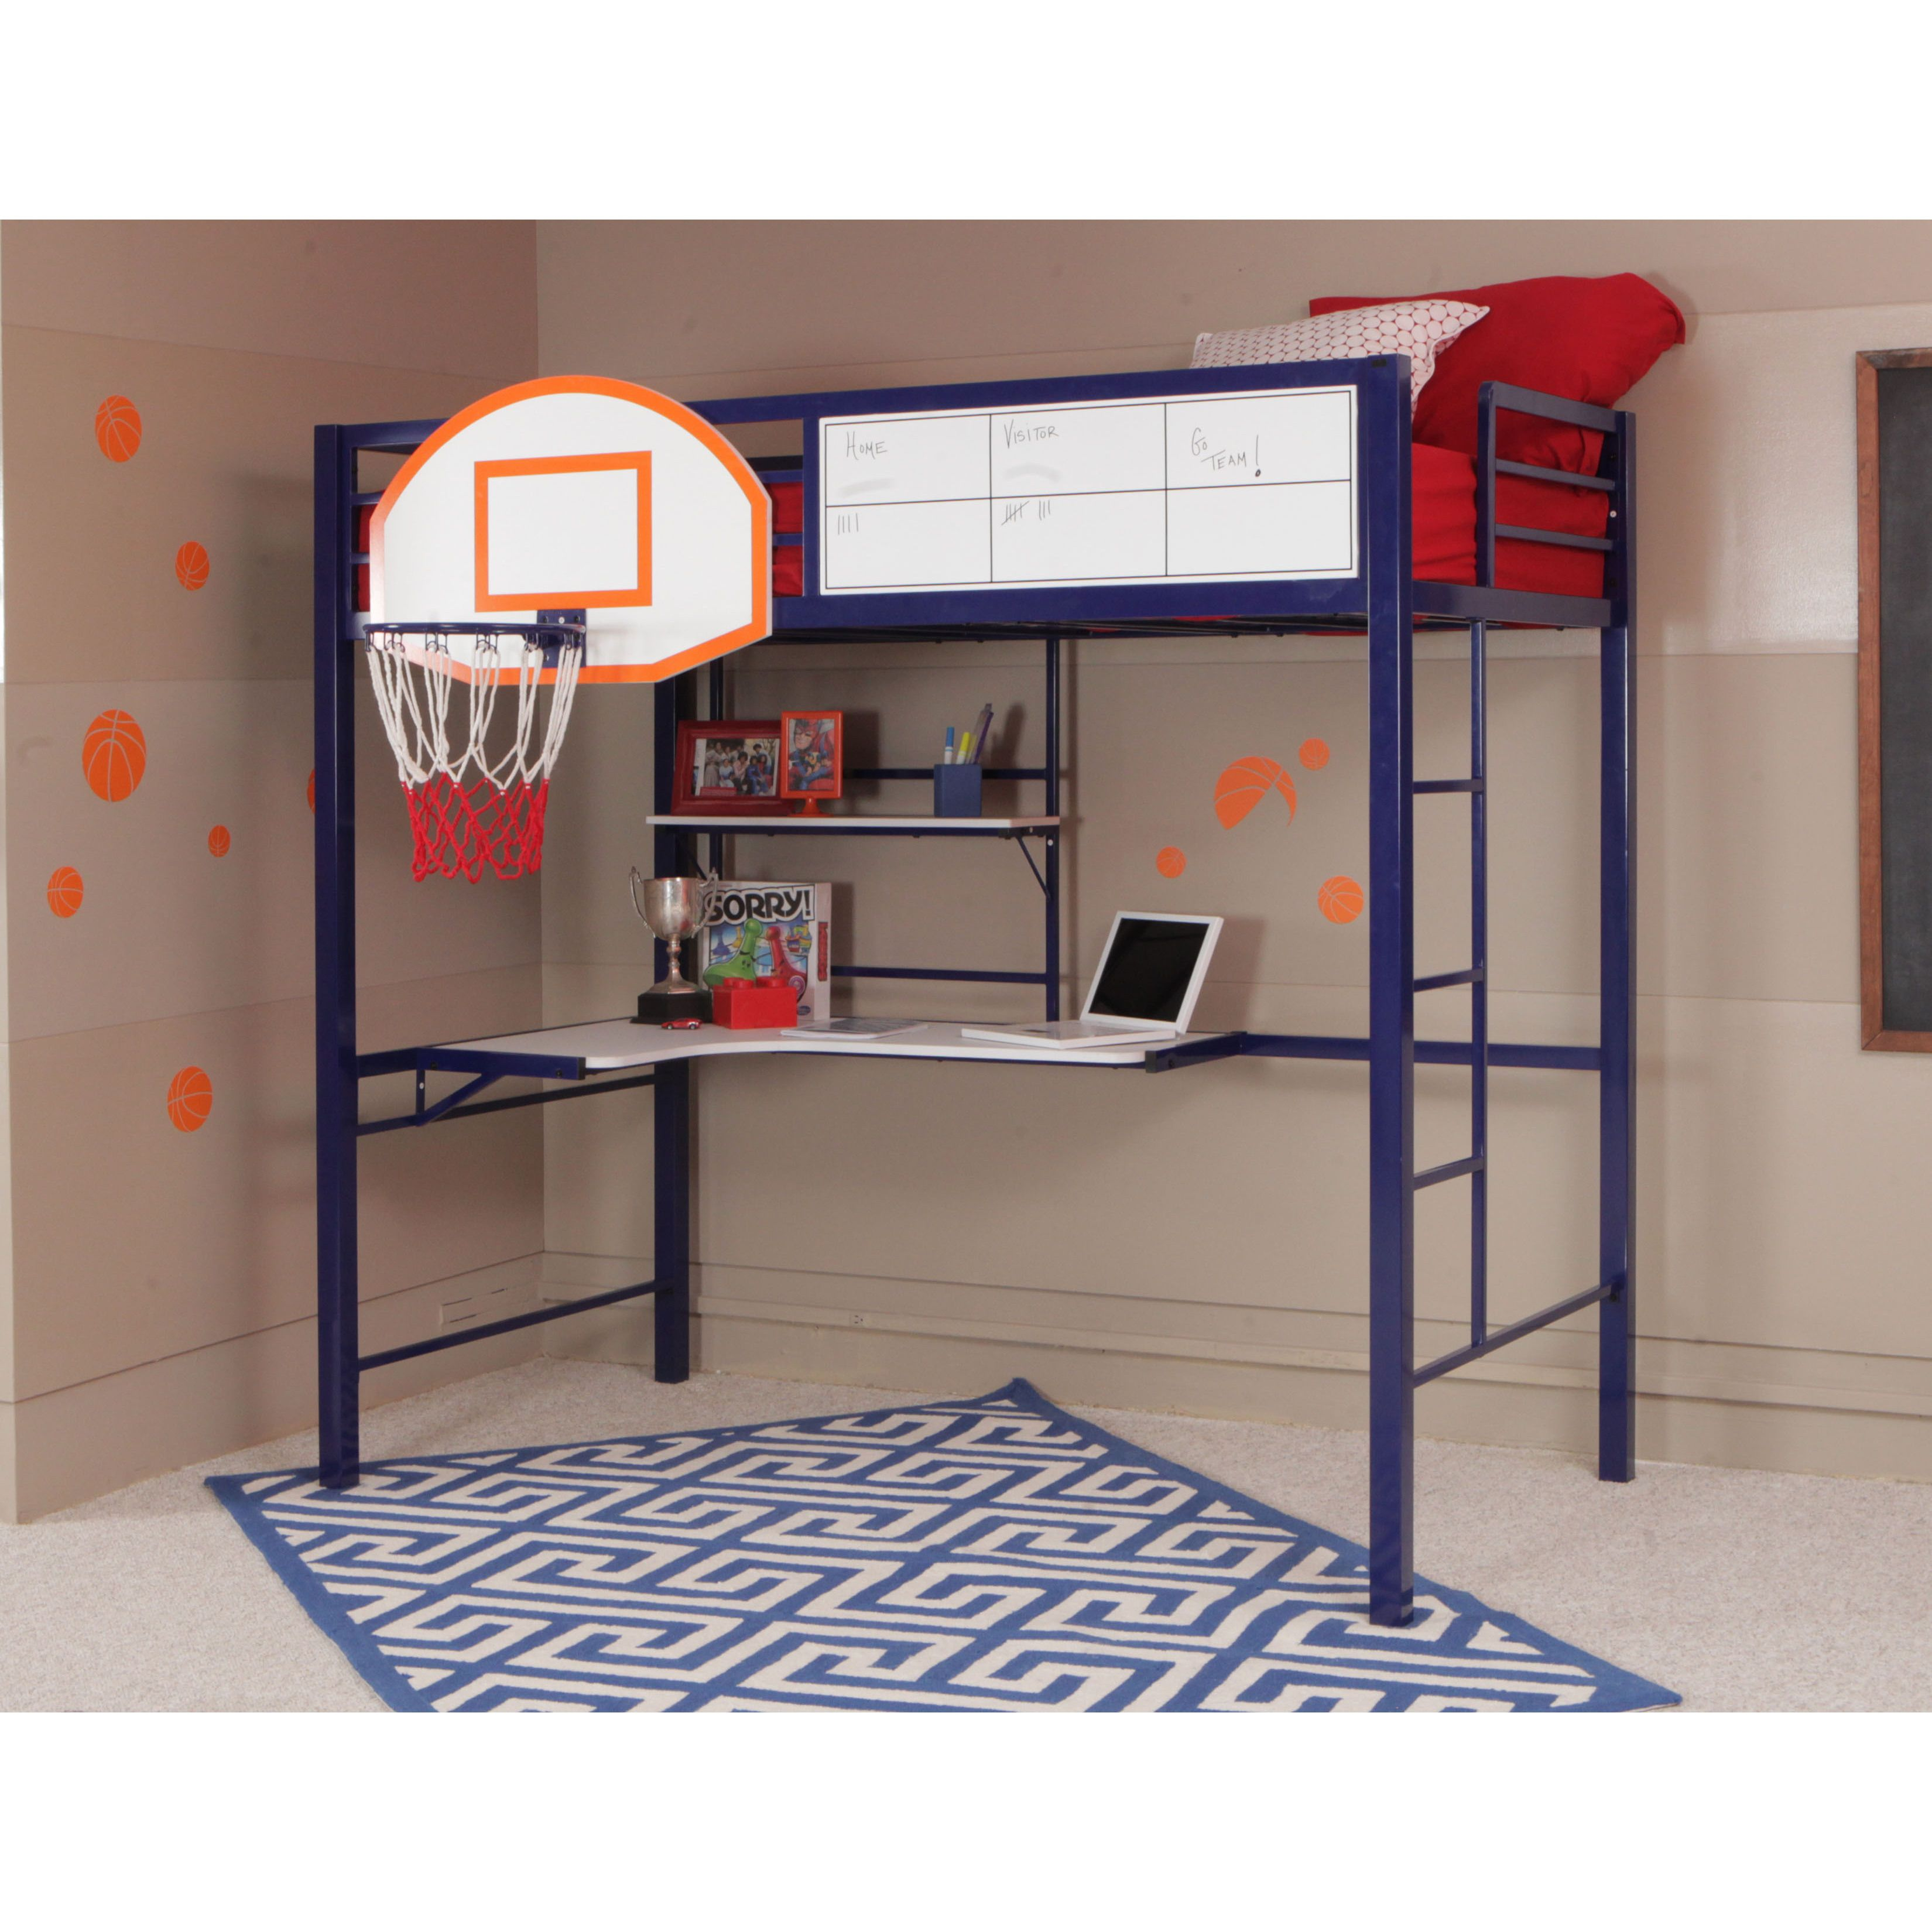 The Powell Hoops Metal Basketball Bed combines fun and function with